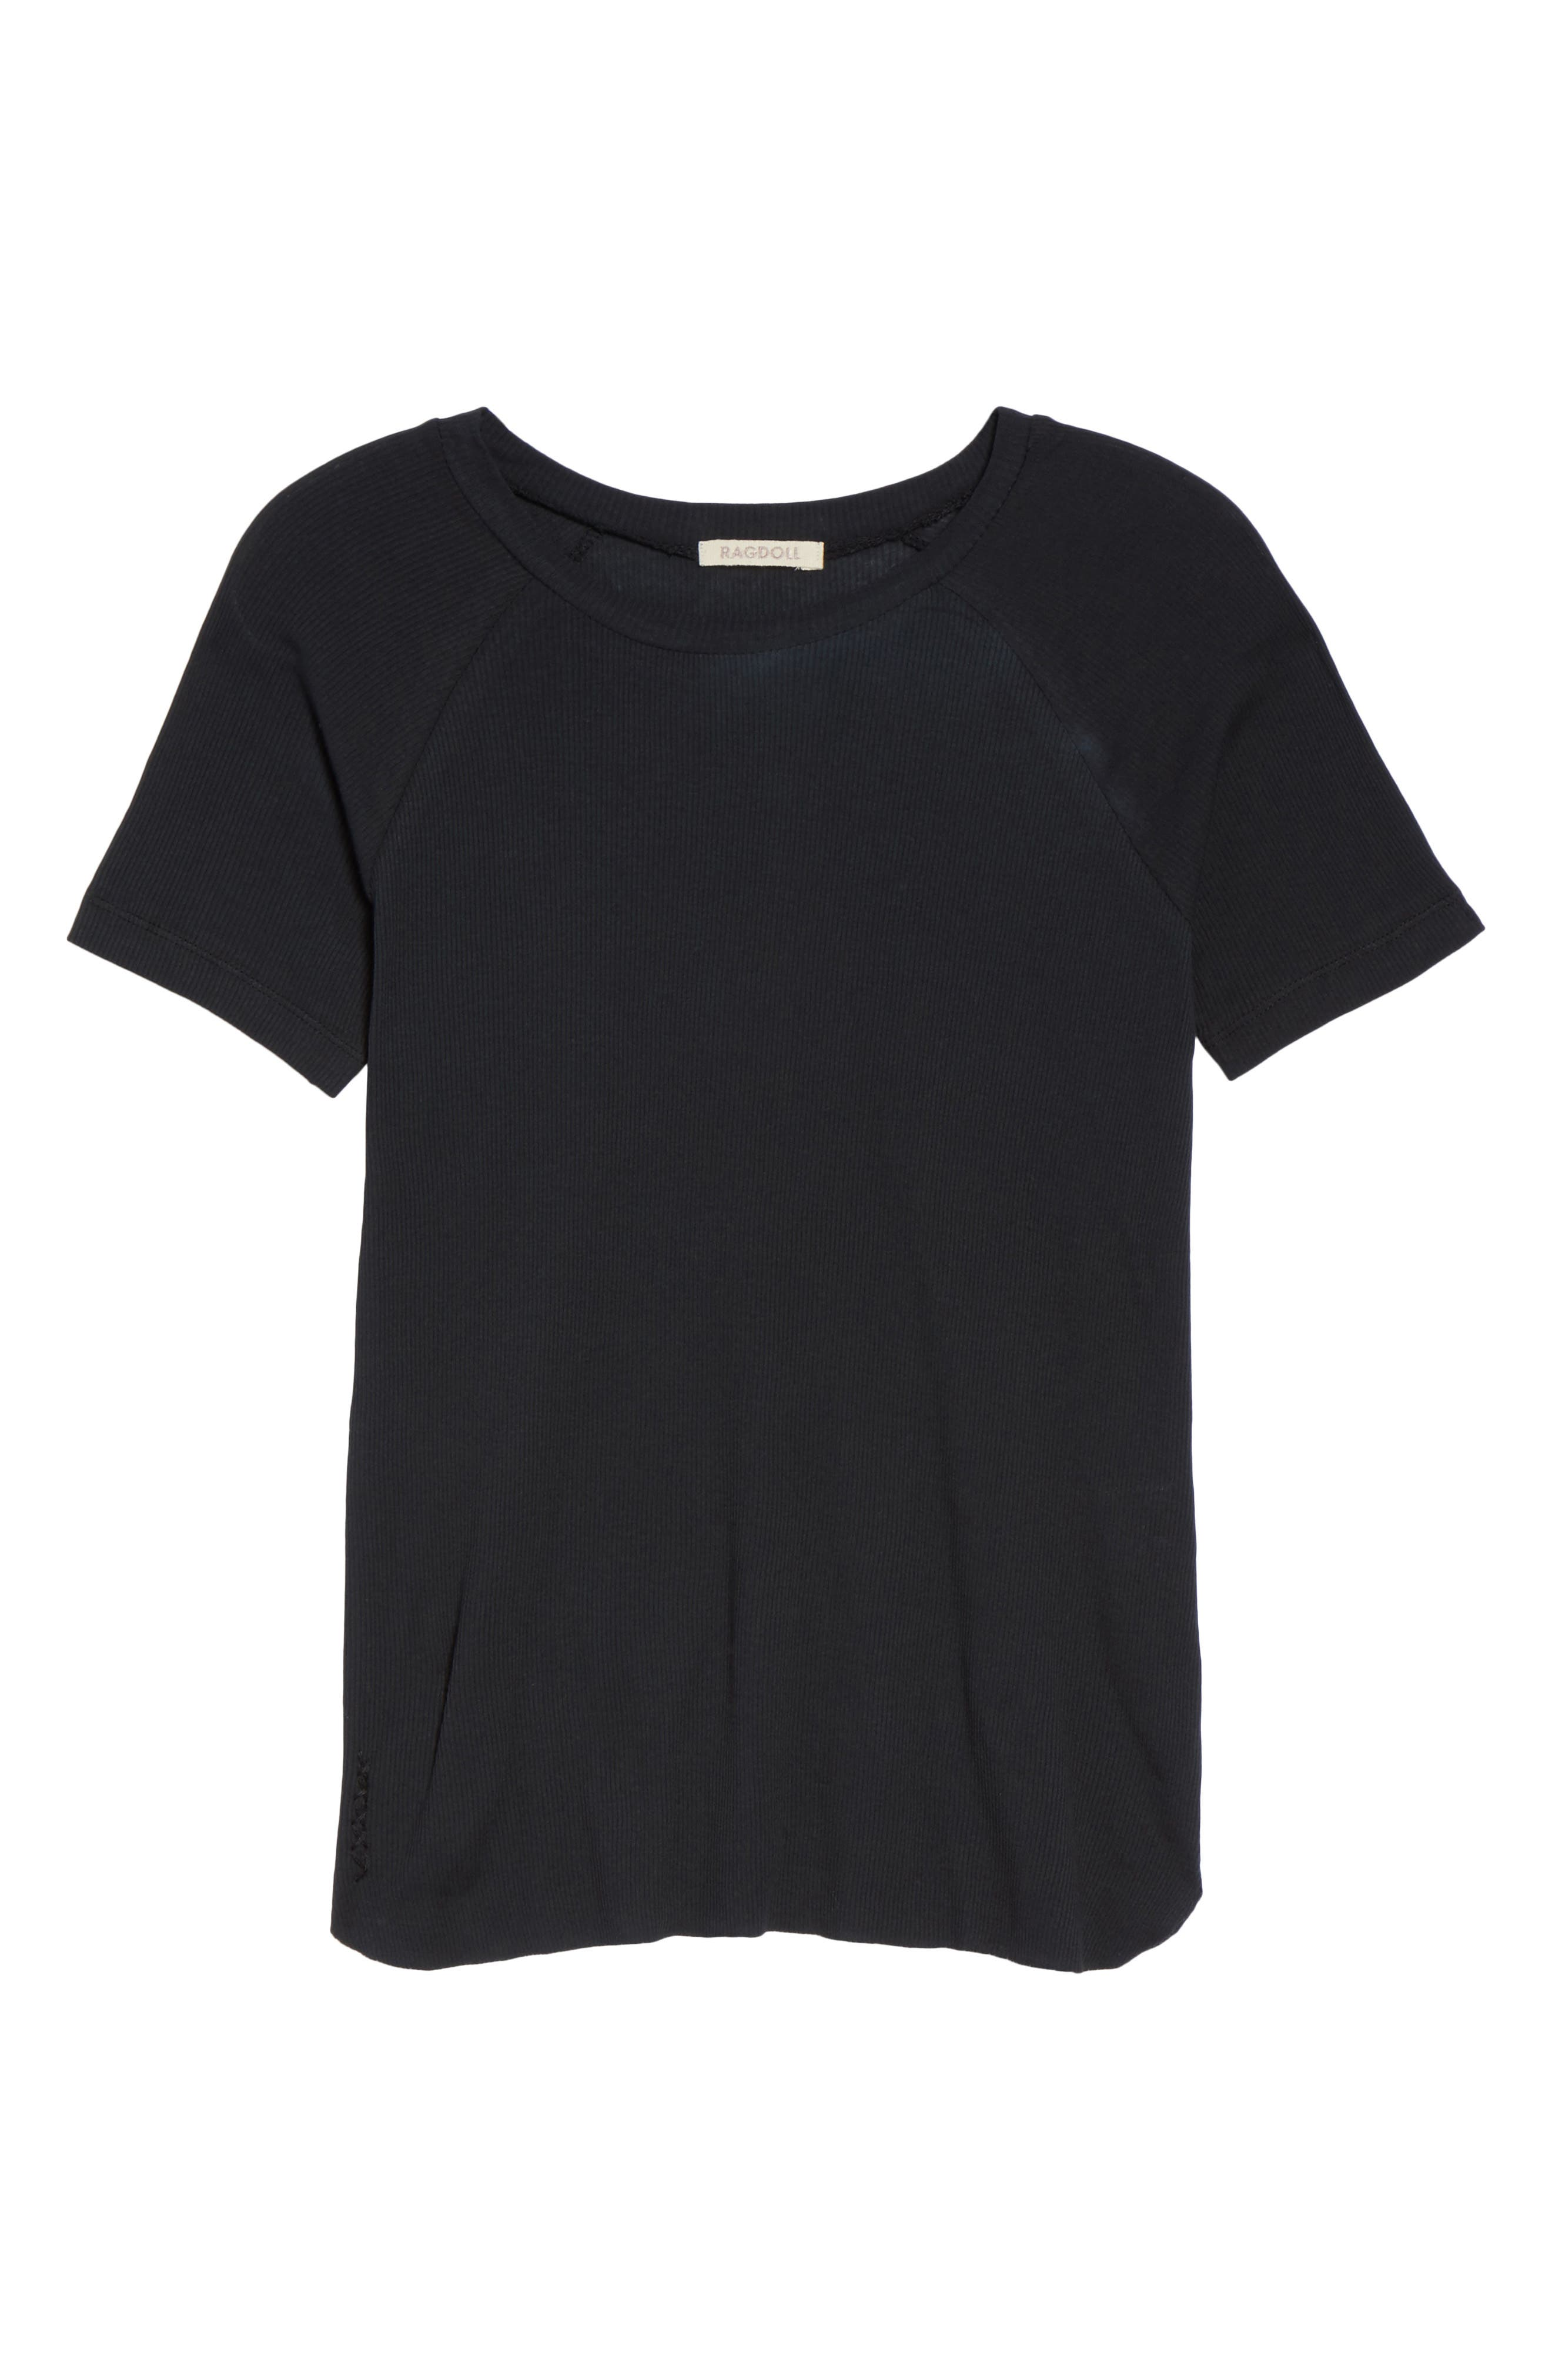 Ribbed Tee,                             Alternate thumbnail 4, color,                             Faded Black